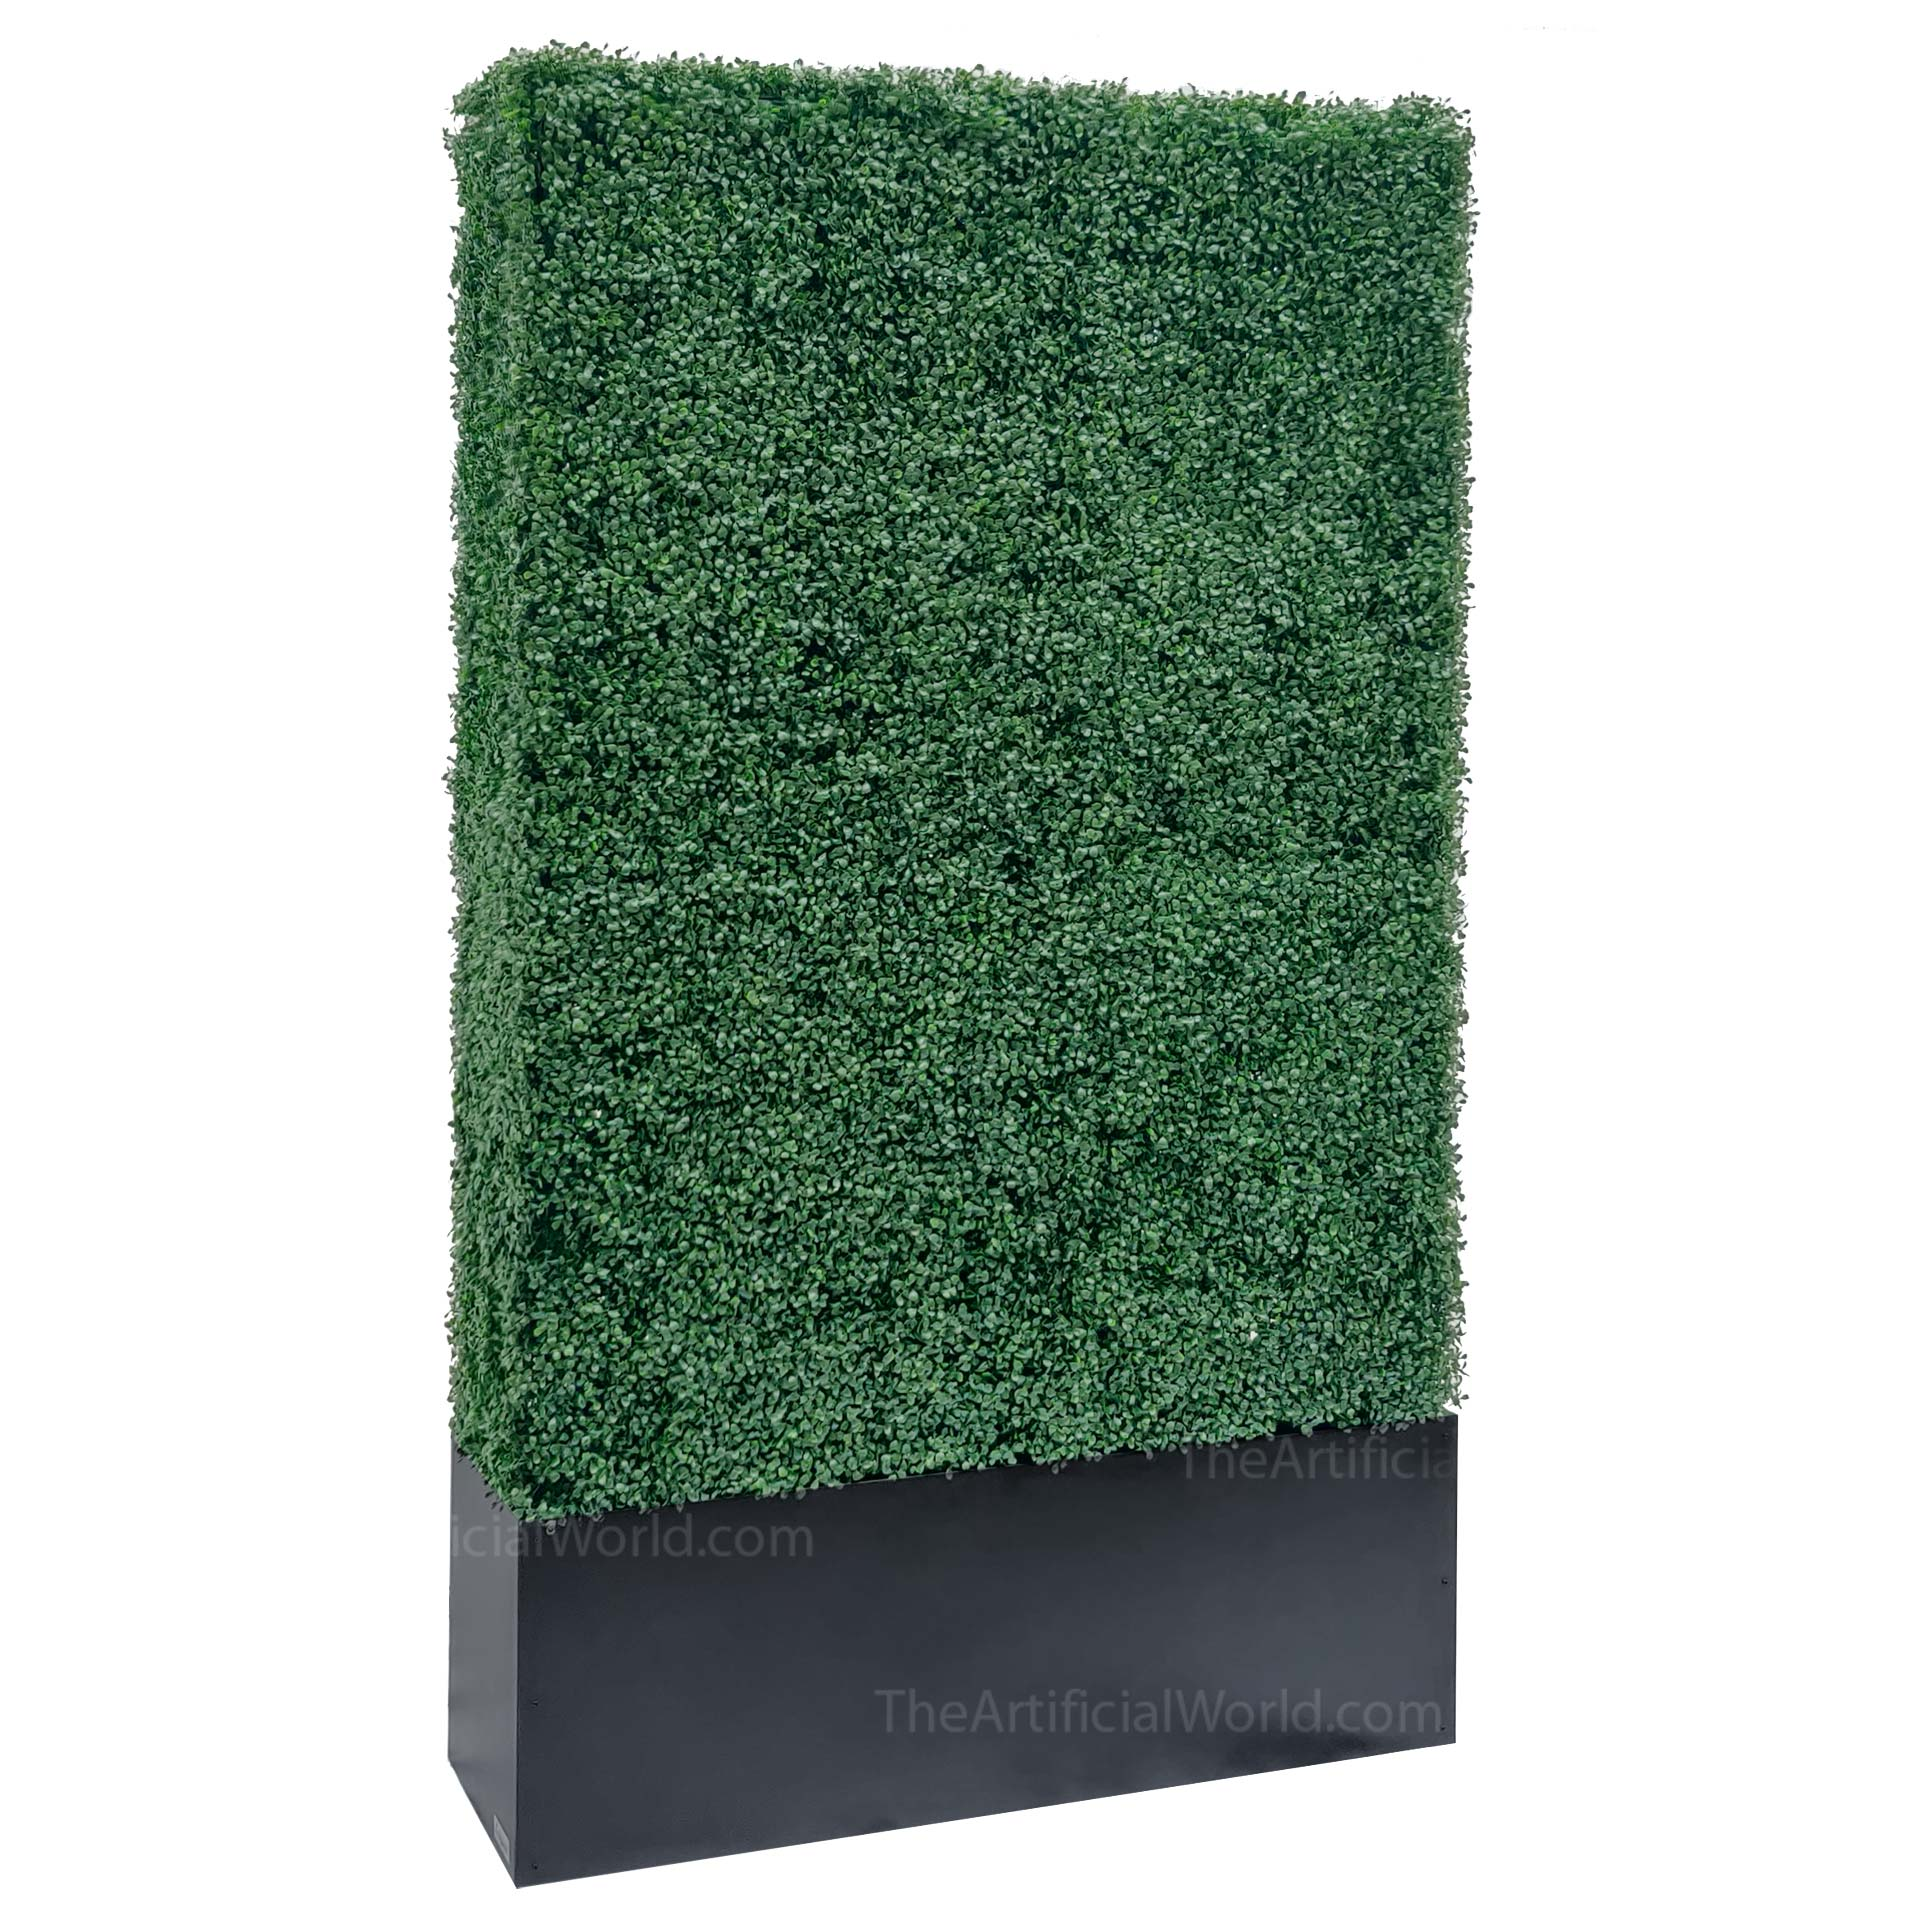 Faux Boxwood Hedge Divider Wall With Planter